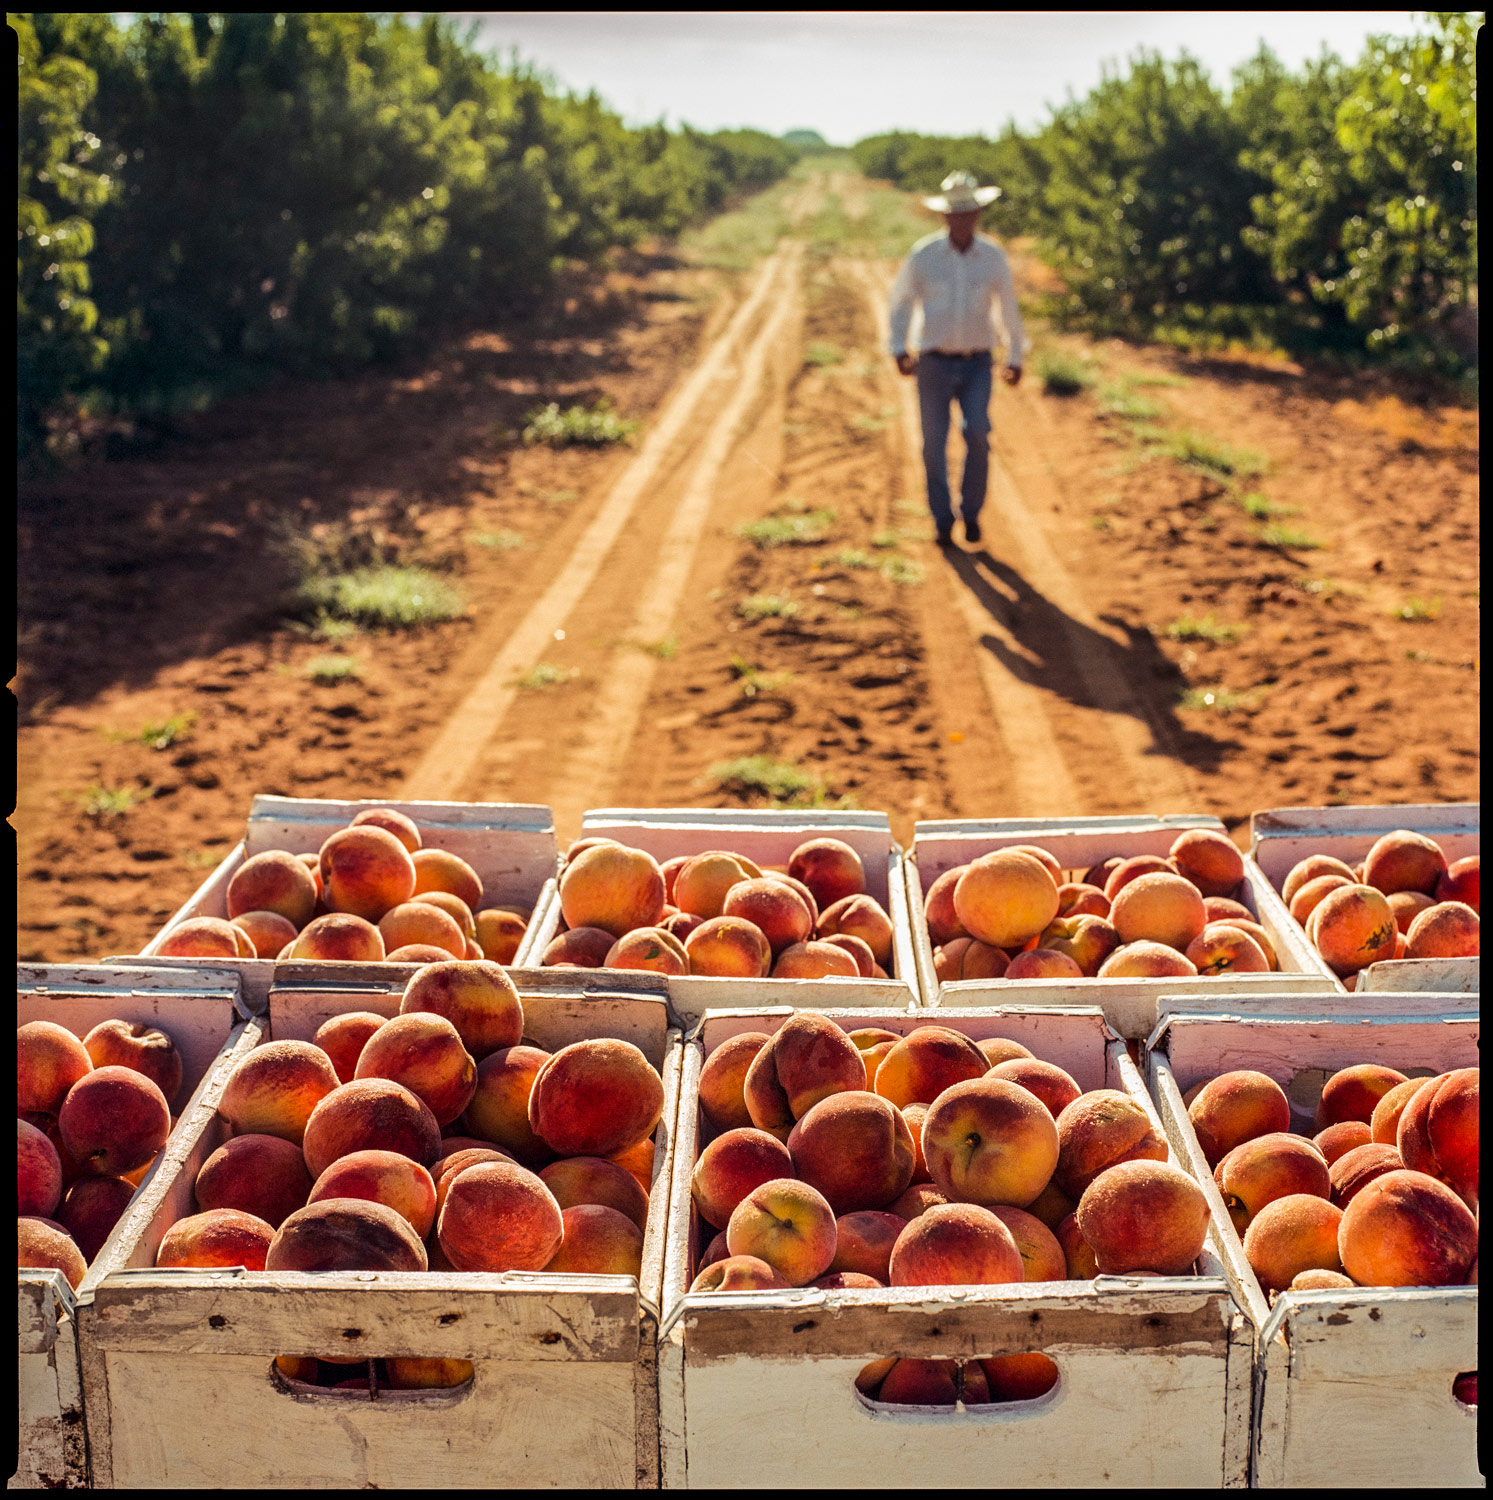 Peaches in crates near Stonewall, Texas